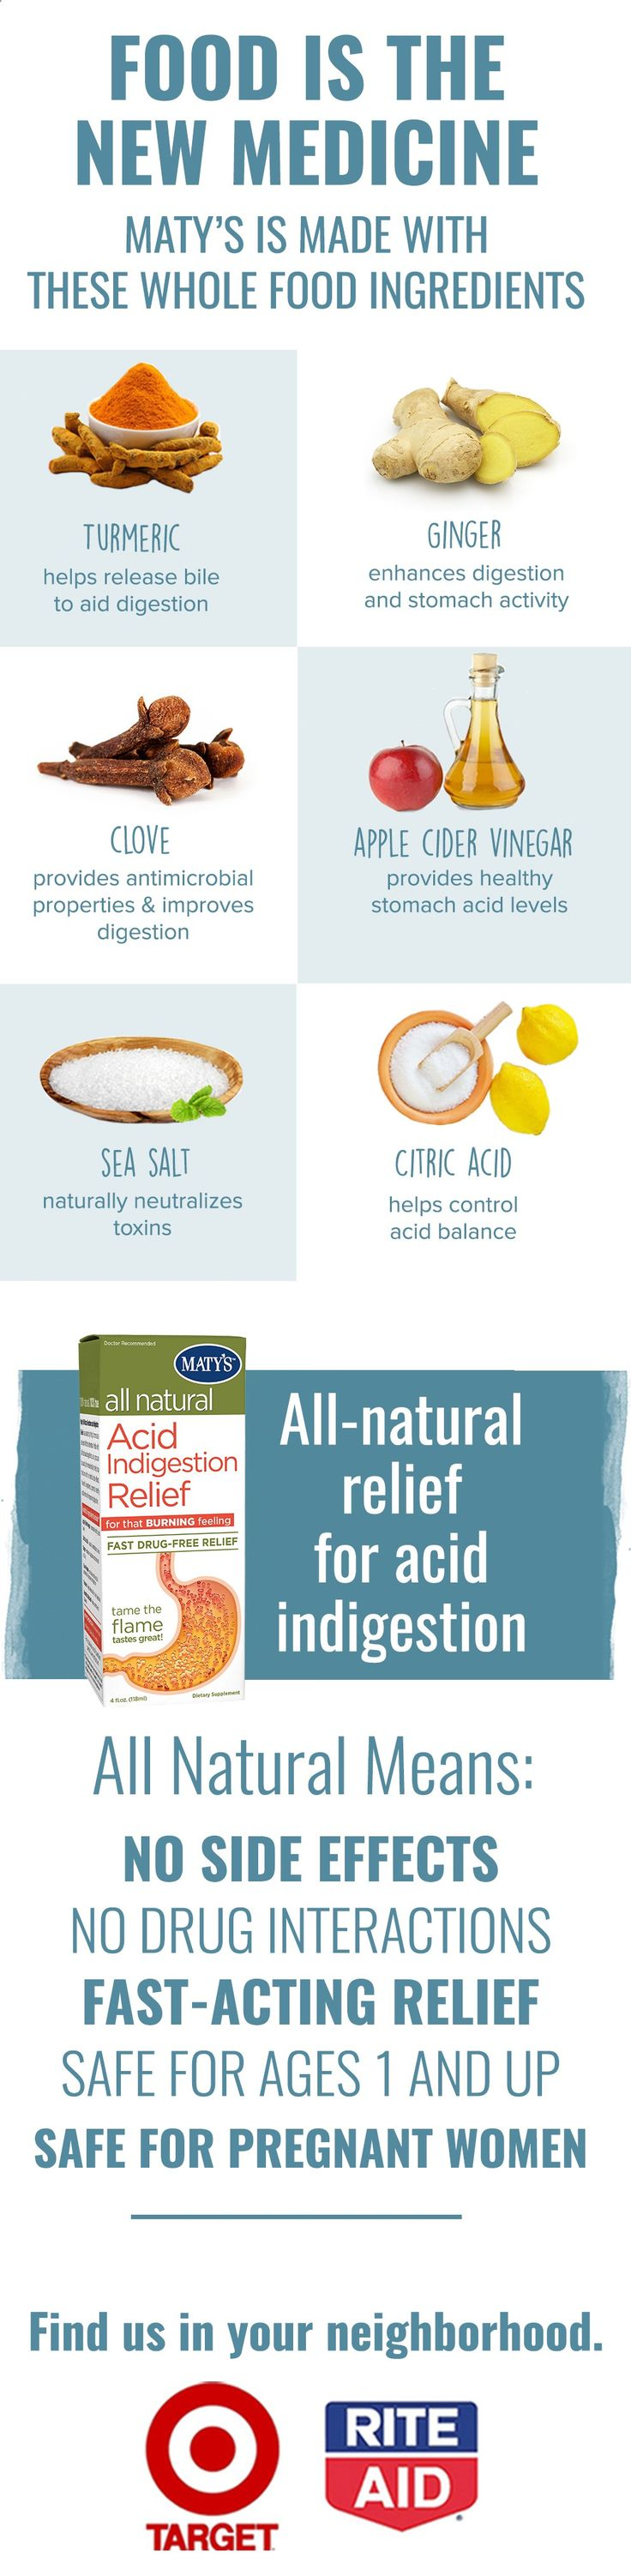 A natural remedy to treat heartburn, acid indigestion, GERD, and acid reflux with no side effects and no drug interactions. Skip the drugs and try Matys natural Acid Indigestion Relief for heartburn.http://matyshealthyproducts.com/better-acid-indigestion-relief/